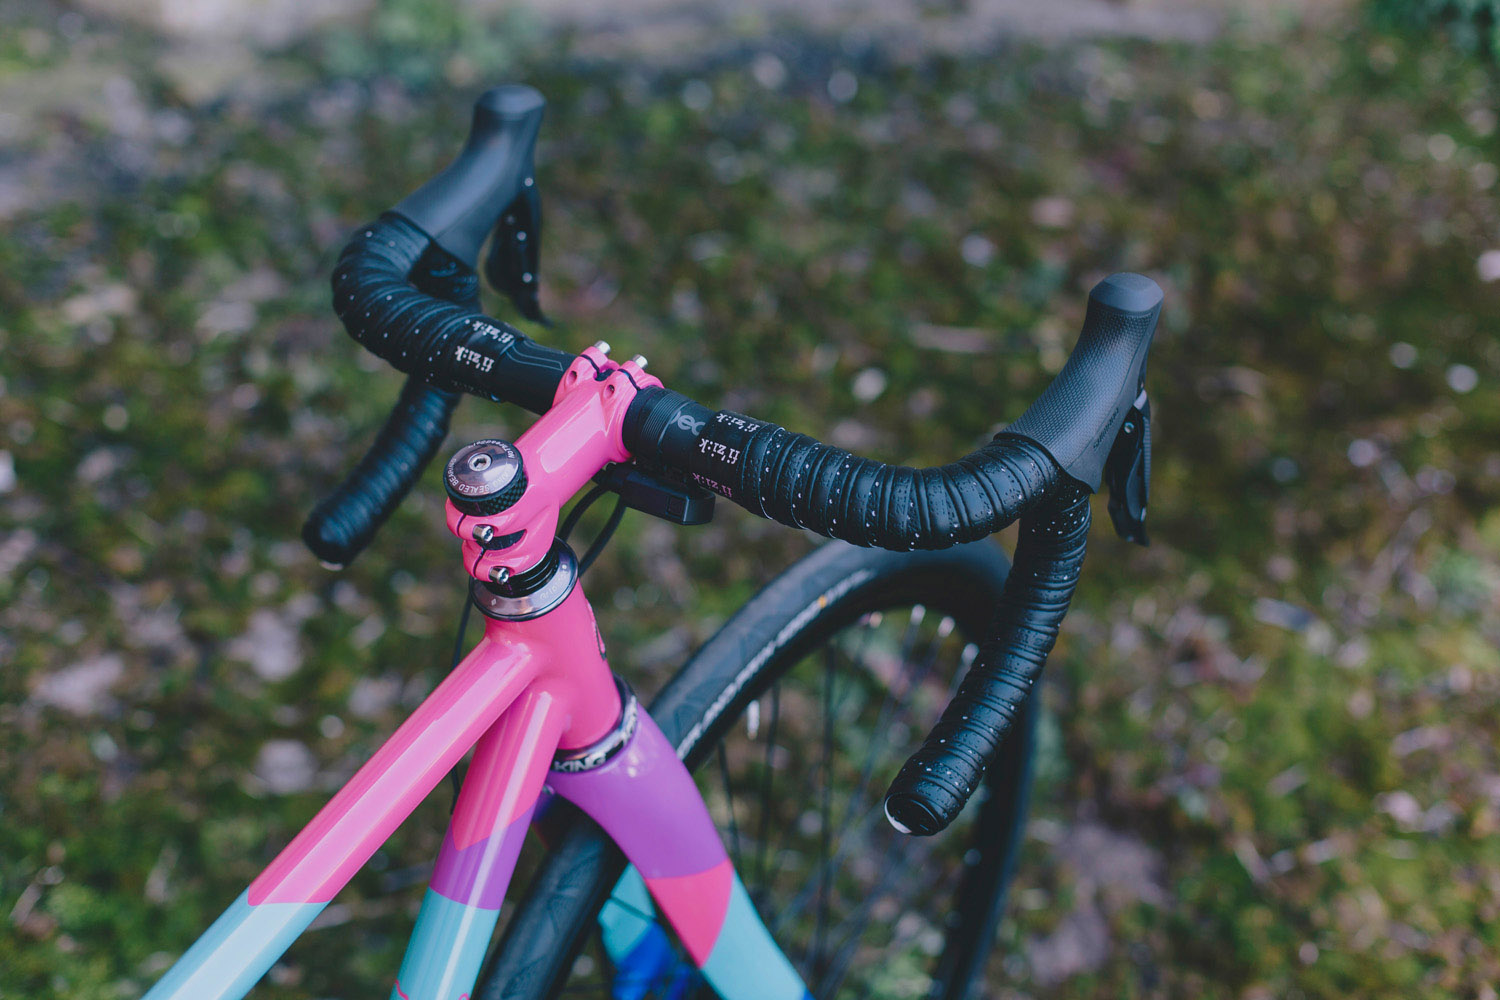 quirk_cycles_eleanors_tcr_dazzler_JPEG_0009.jpg